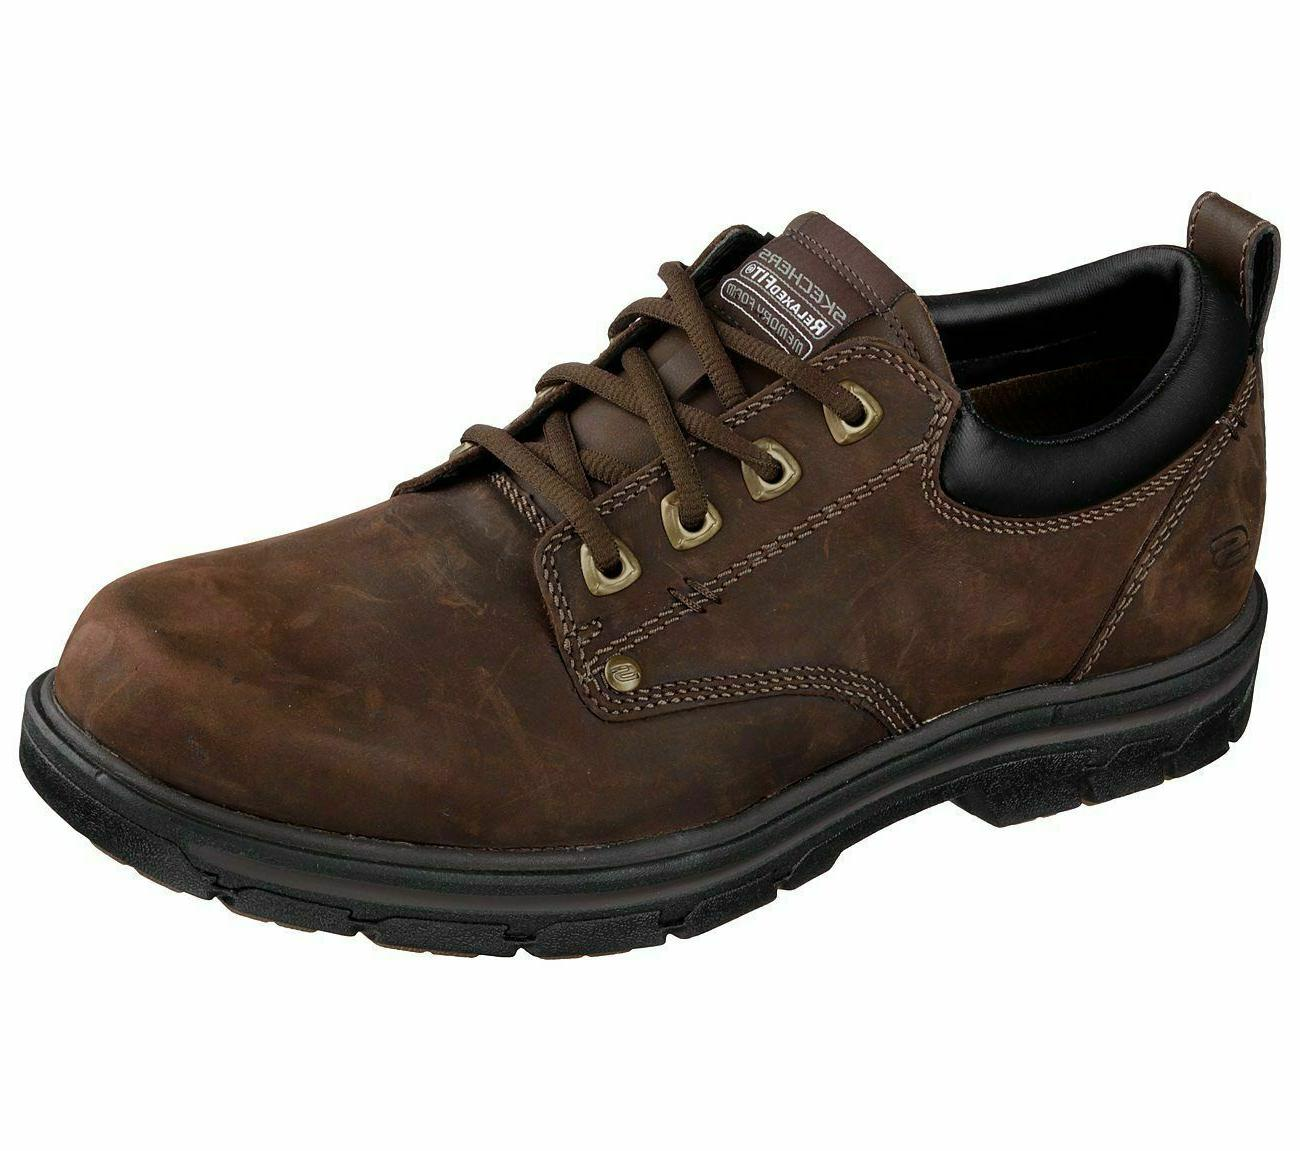 Wide Fit Brown Skechers Shoes Mens Memory Foam Leather Dress